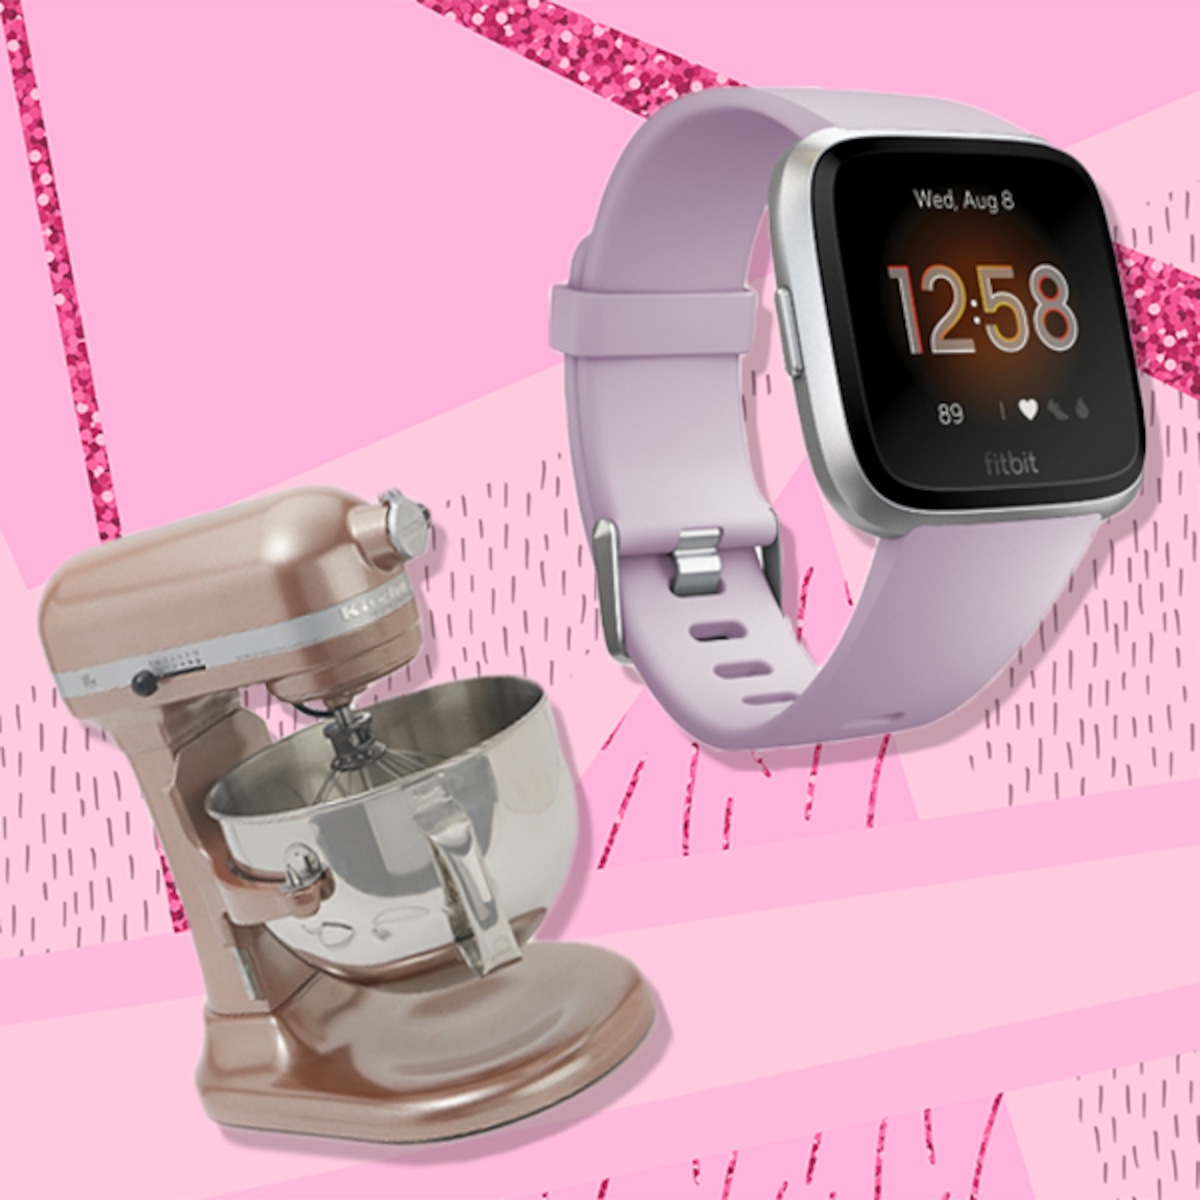 Qvc S Top 10 Mother S Day Gift Ideas E News